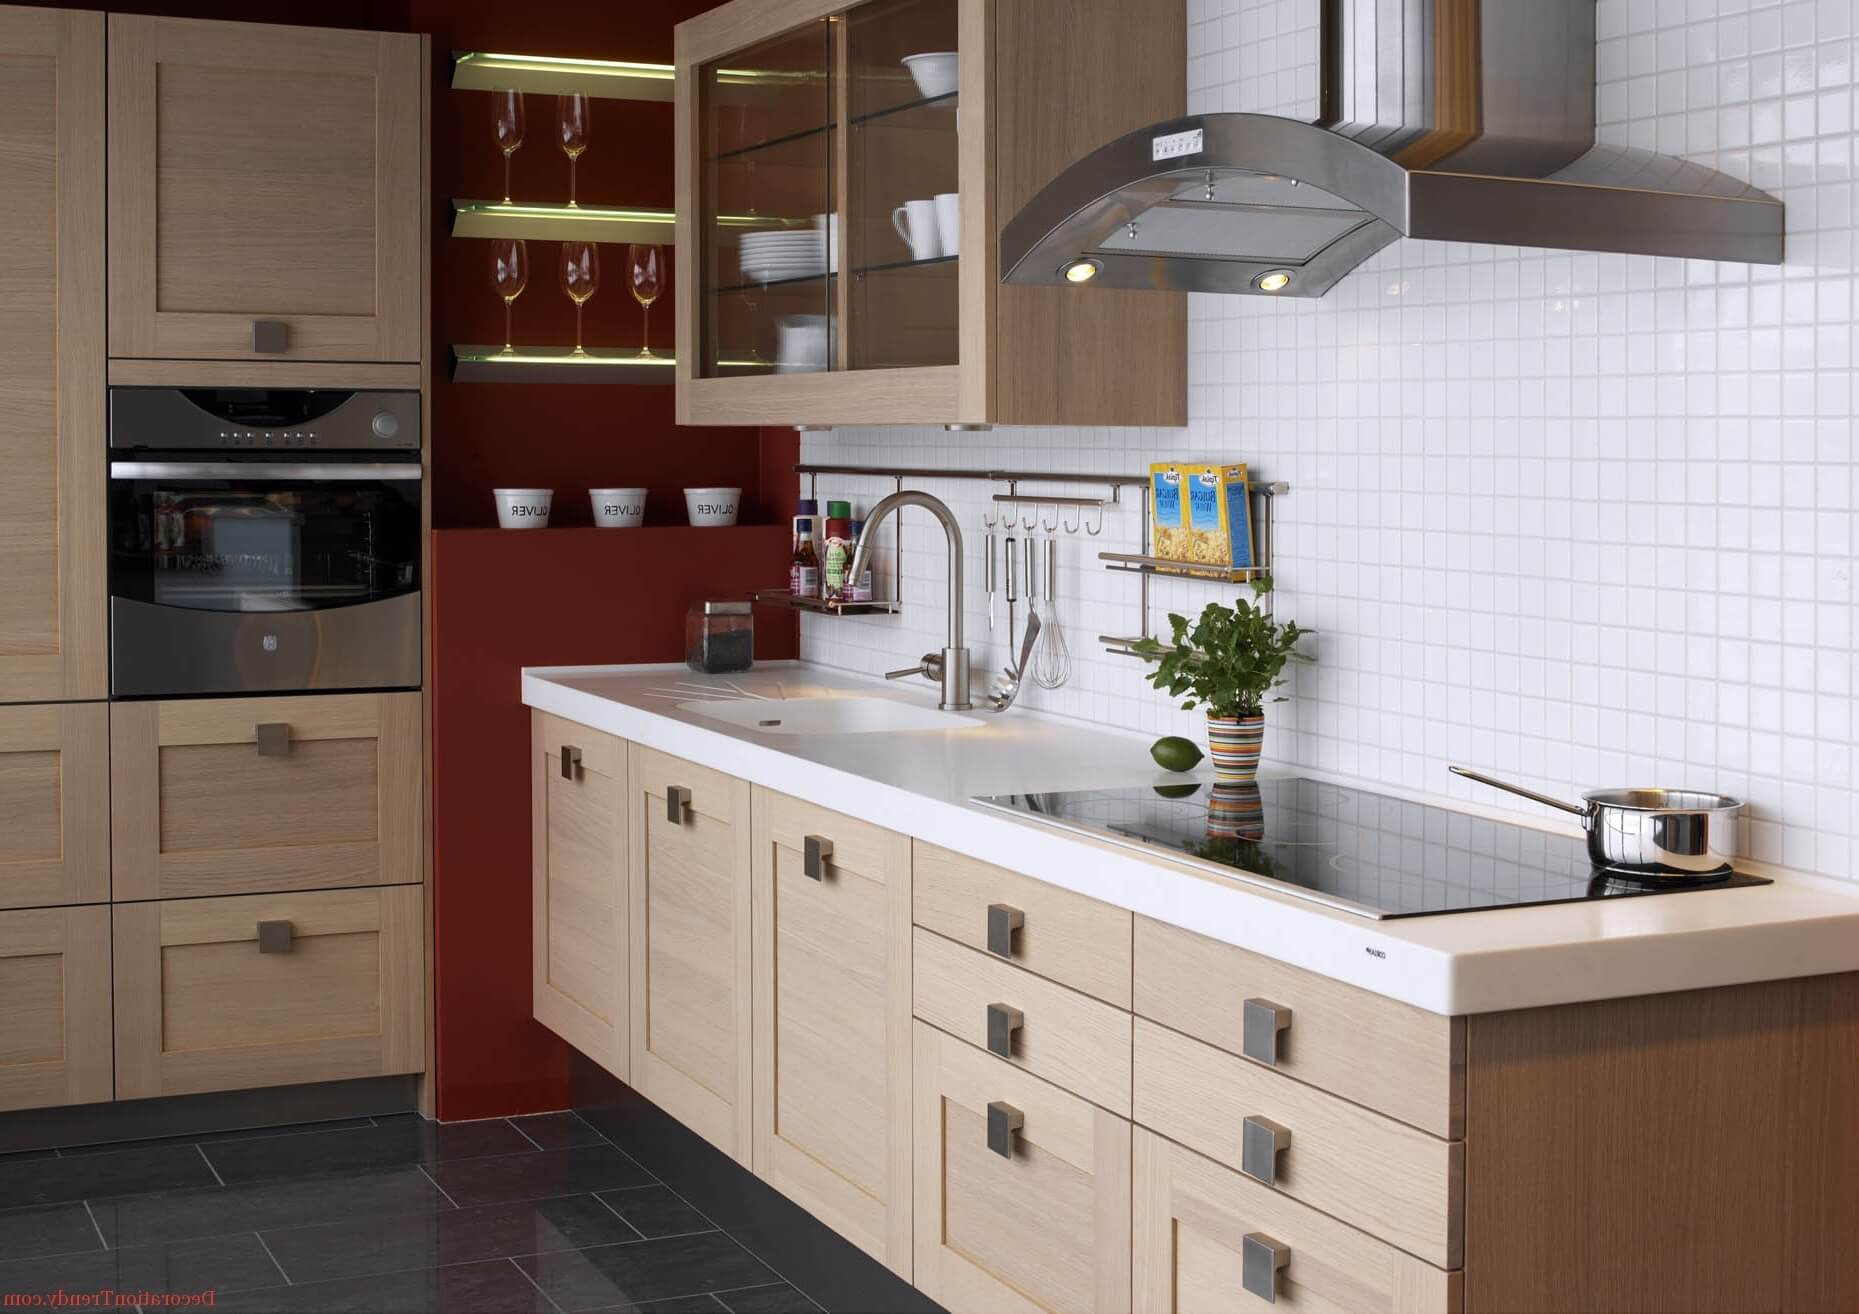 rta kitchen cabinets why you should use them in your kitchen rta kitchen cabinets RTA Kitchen Cabinets for small places